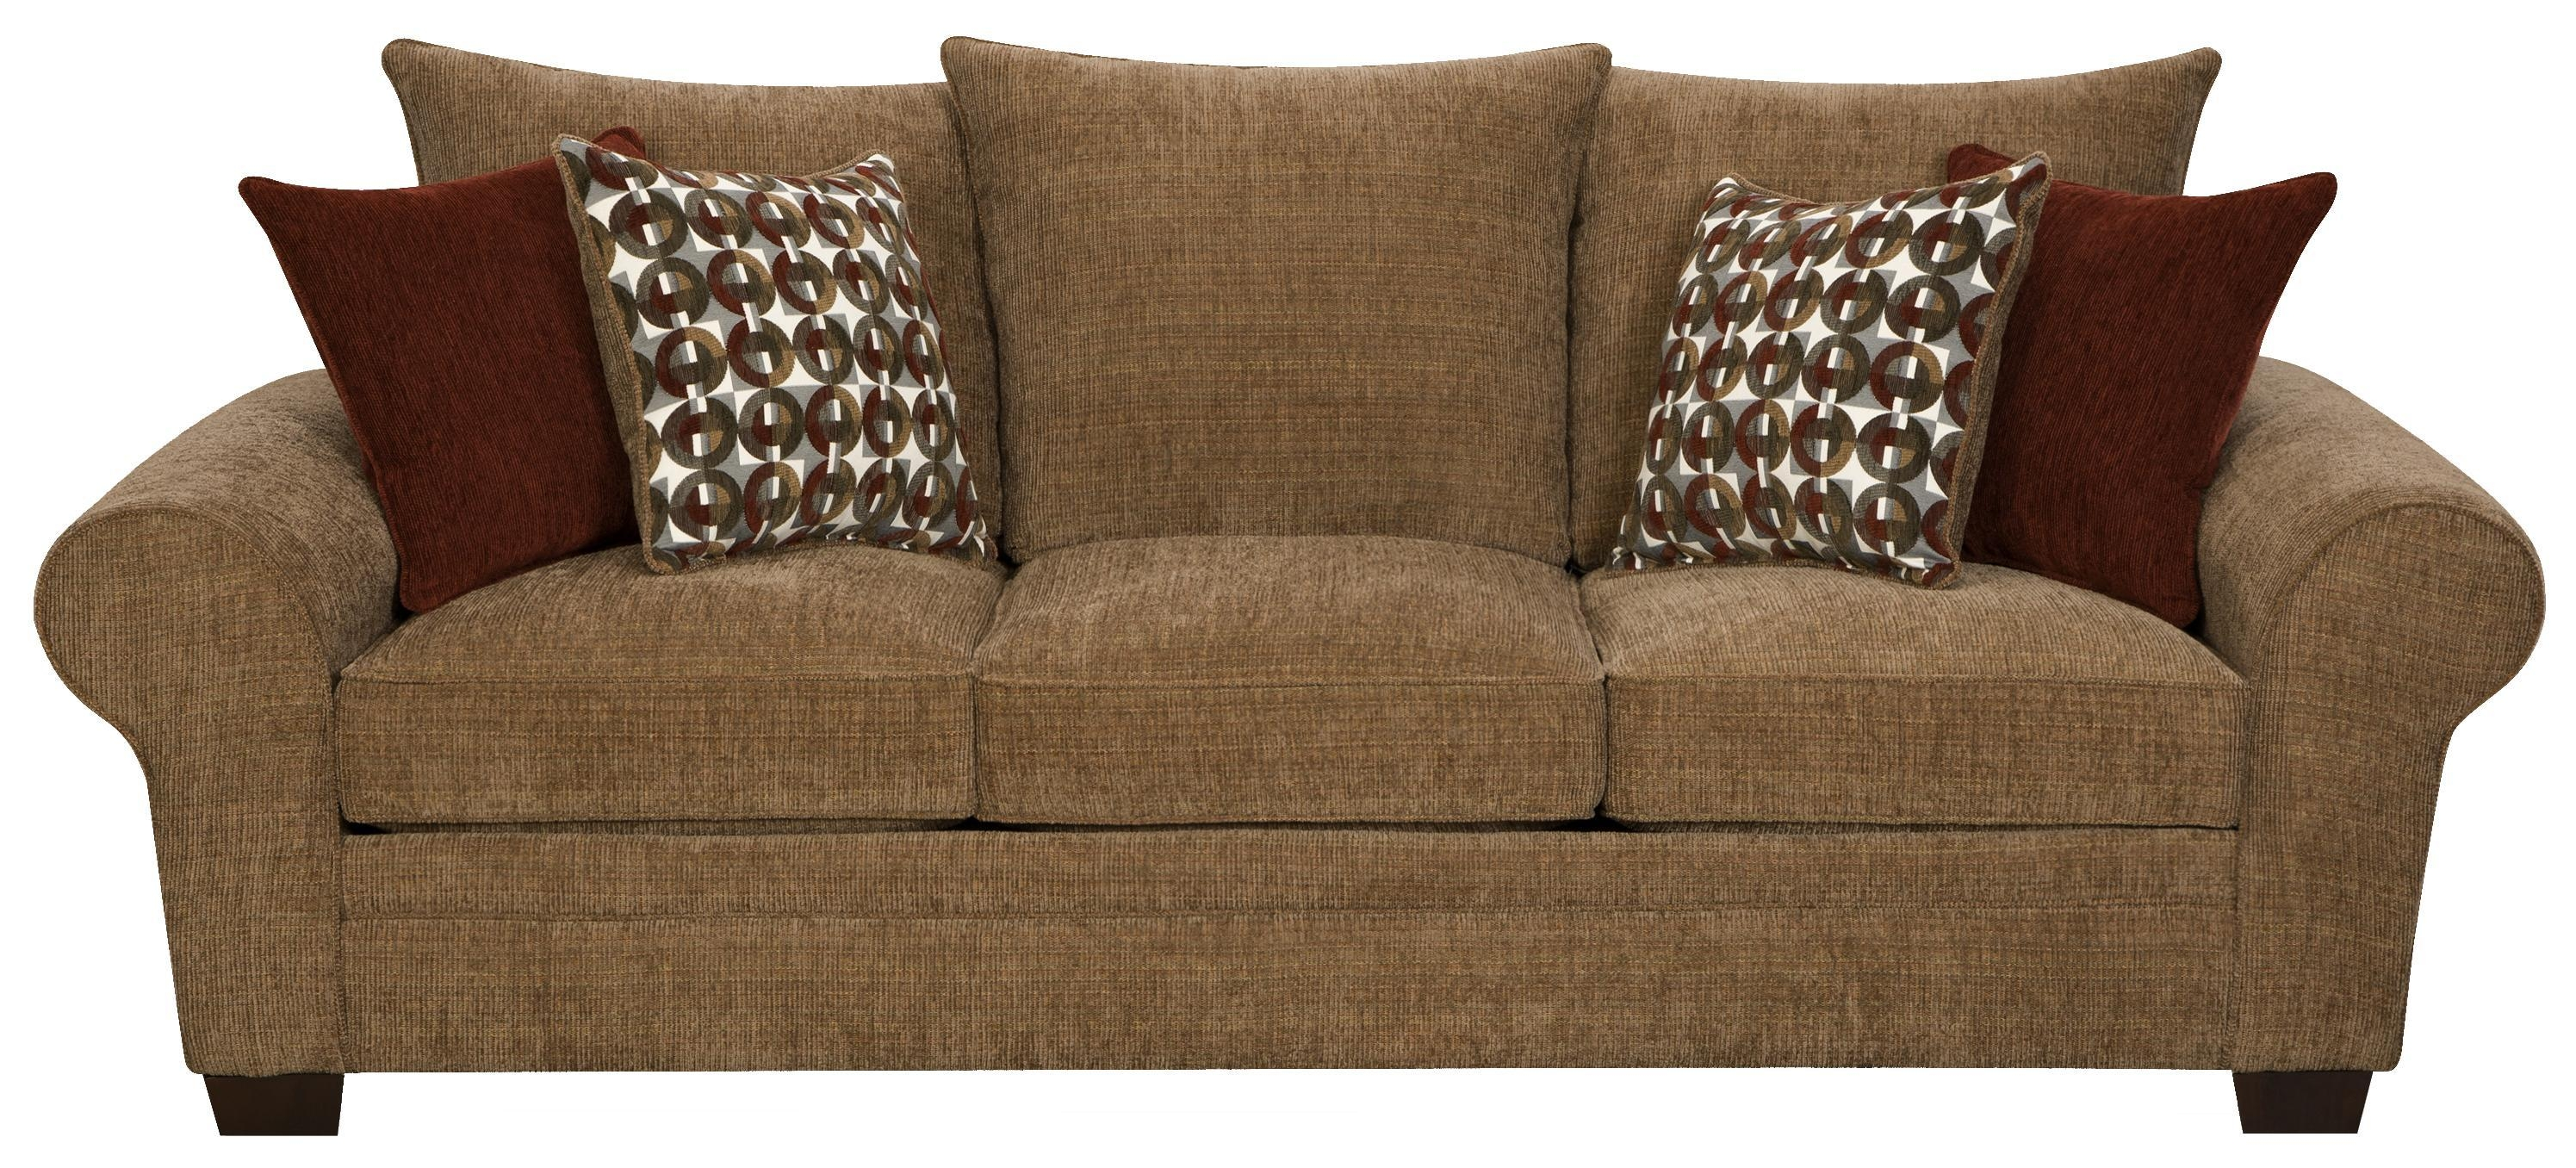 Featured Image of Corinthian Sofas